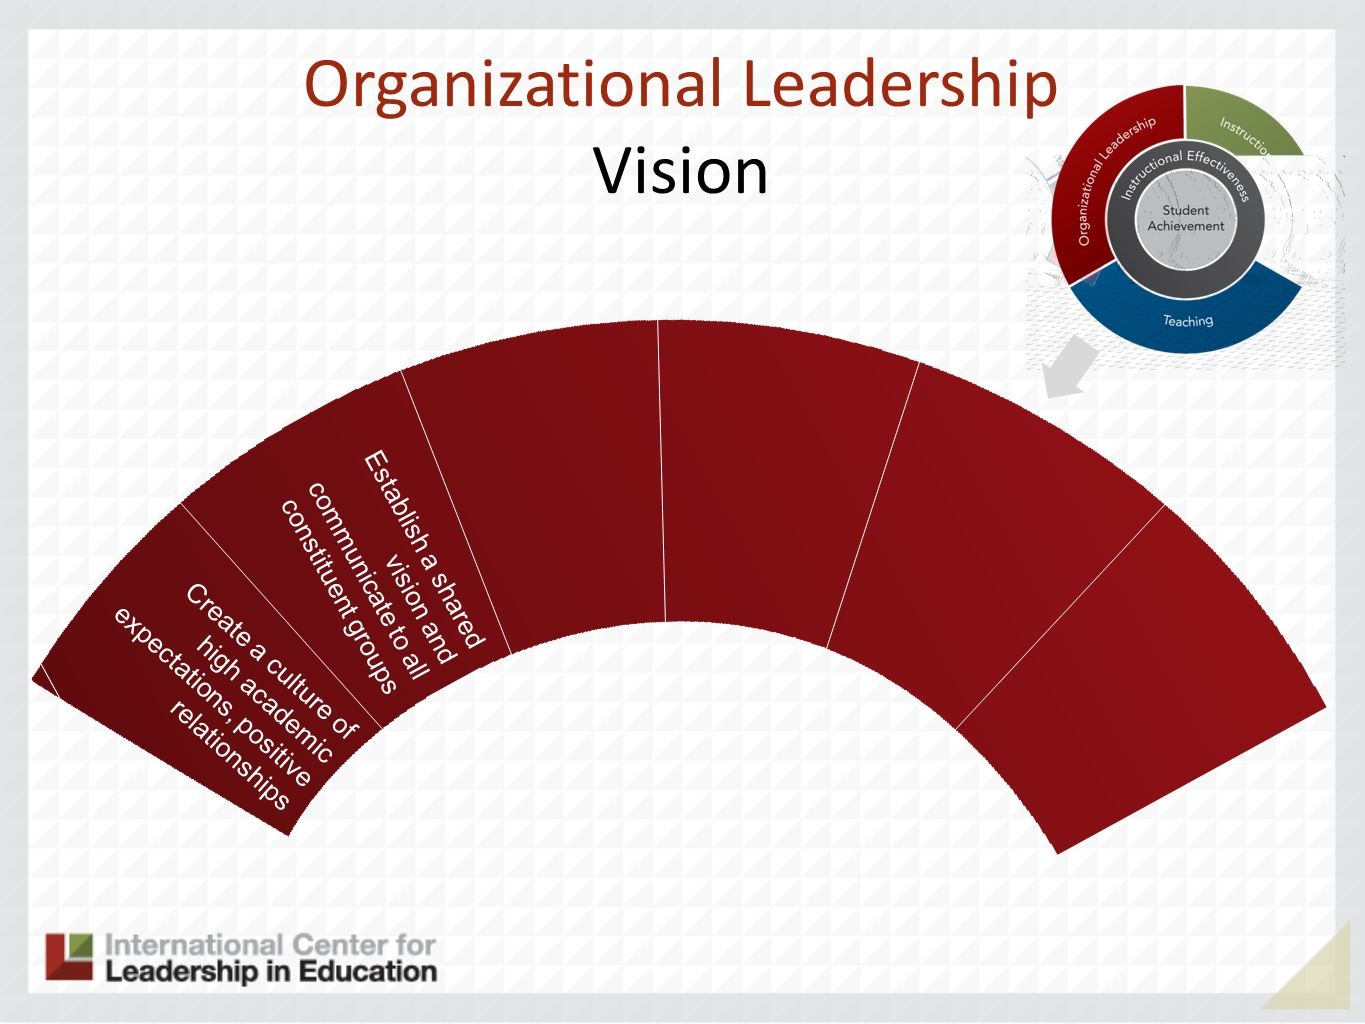 Organizational Leadership Vision Establish a shared vision and communicate to all constituent groups Create a culture of high academic expectations, positive relationships